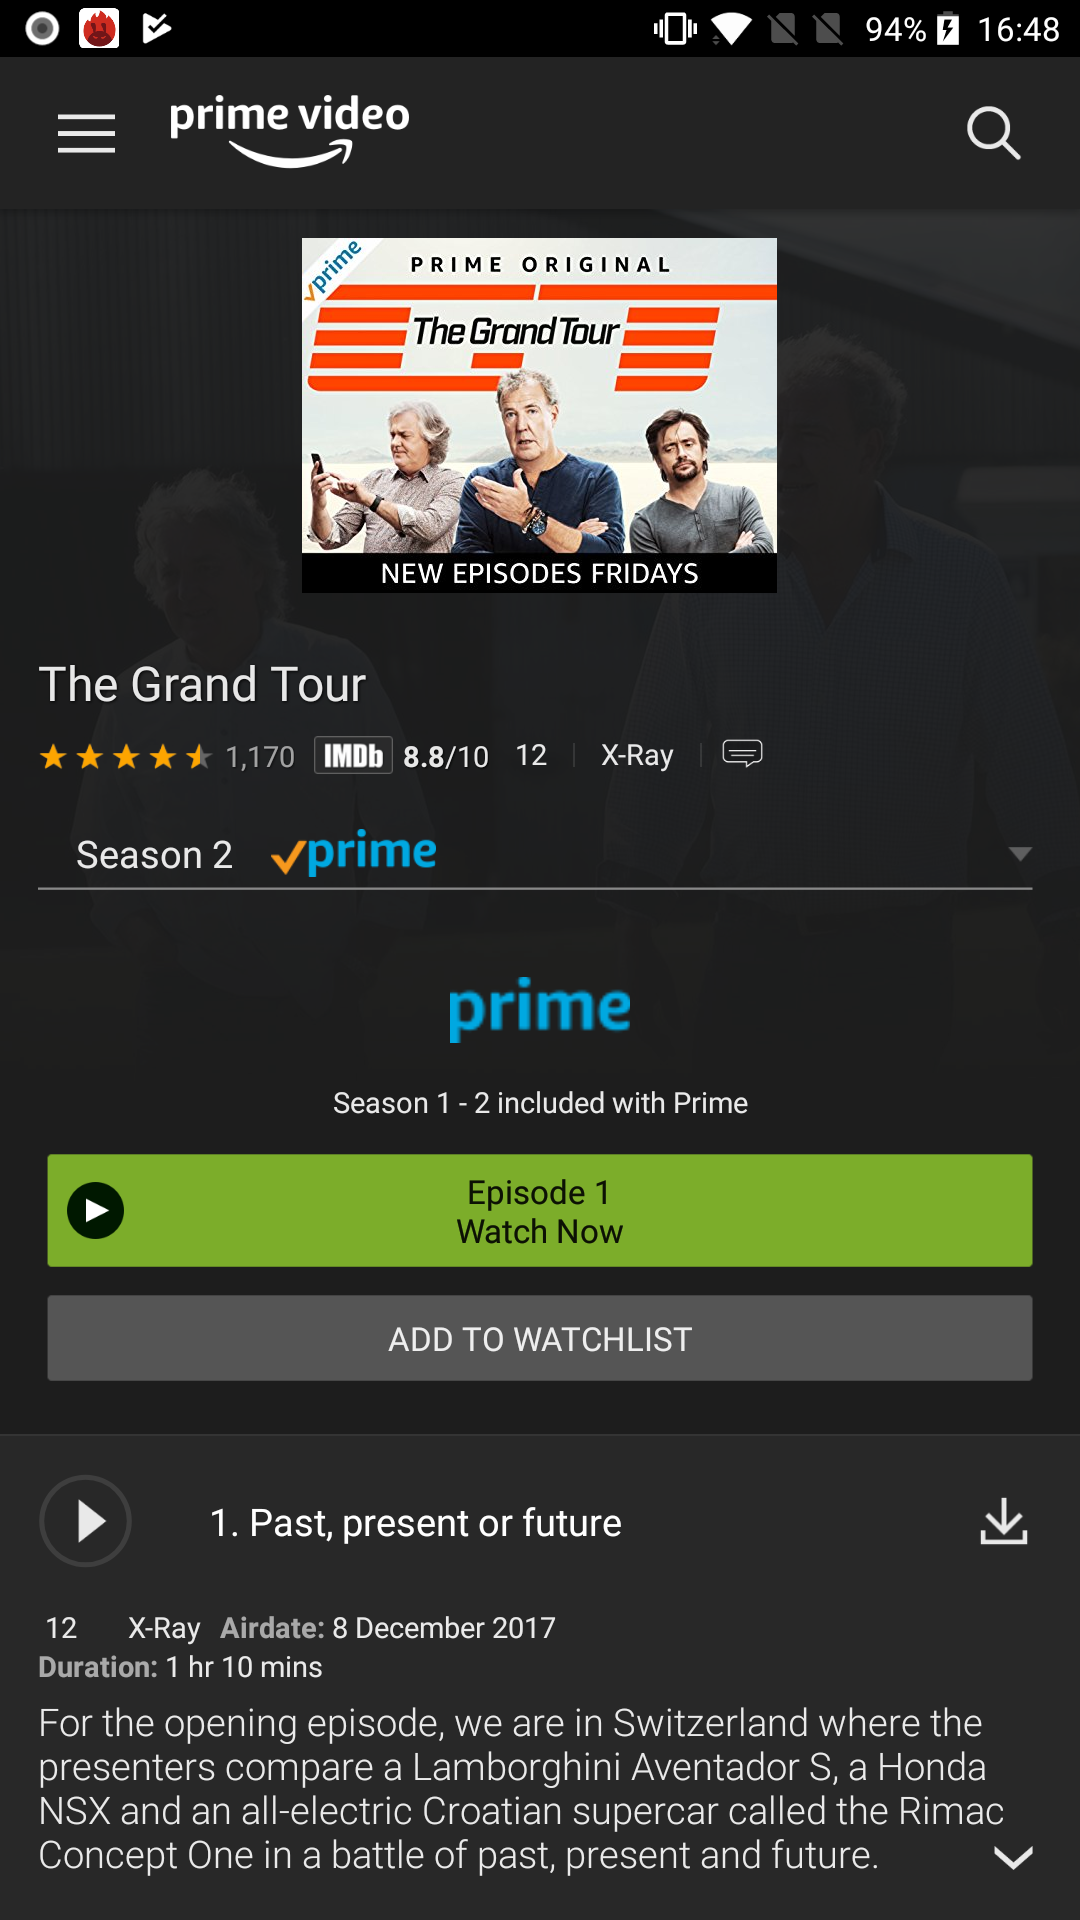 amazon prime video apk download